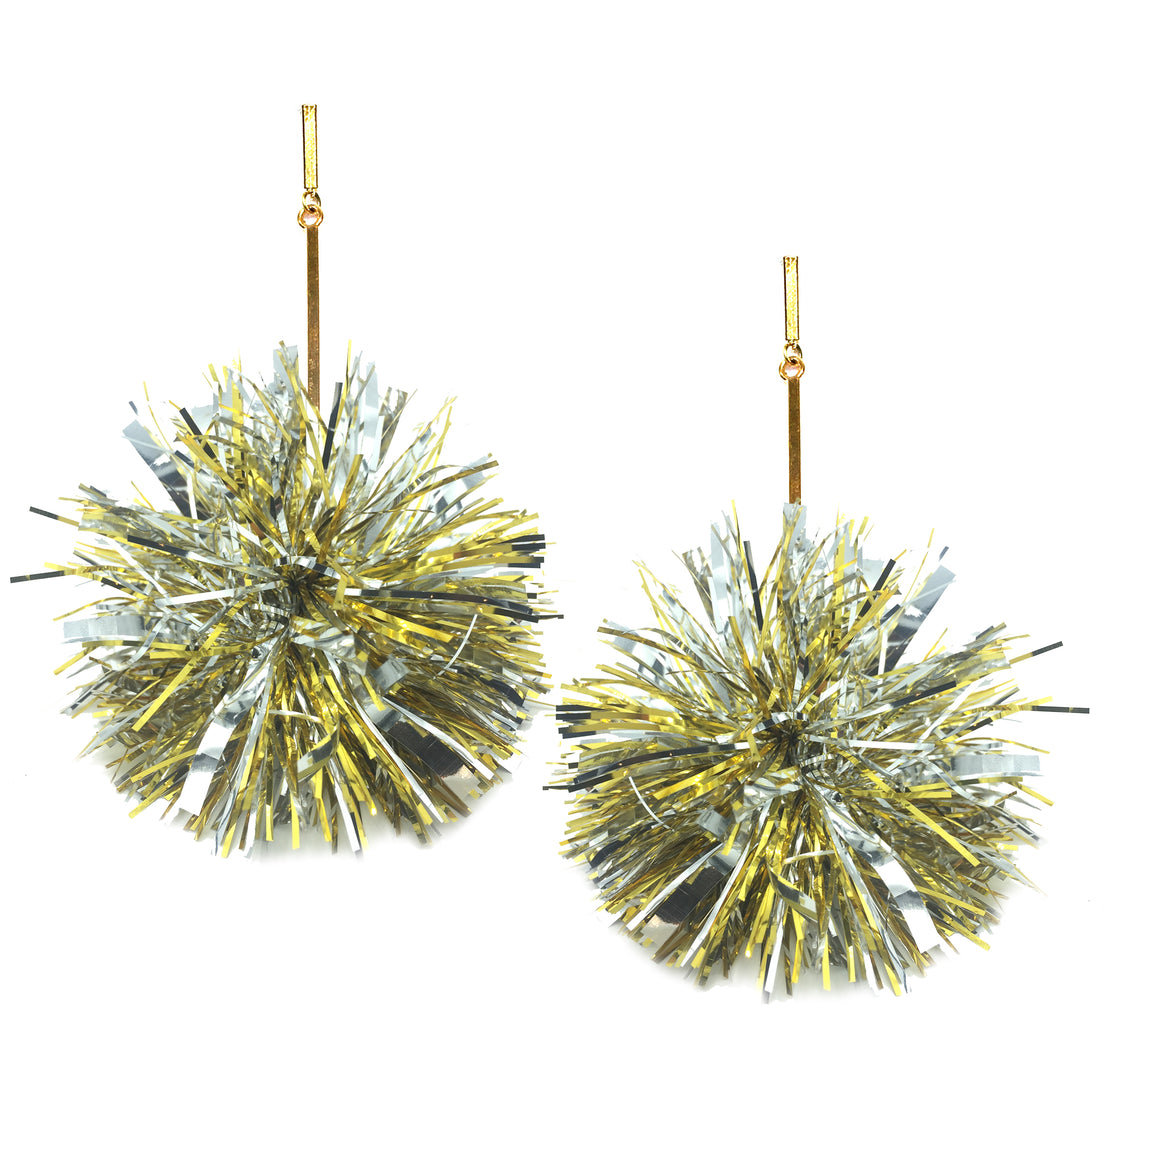 "3"" Gold and Silver Lurex Pom Pom Earrings, Earrings, Tuleste, Tuleste"